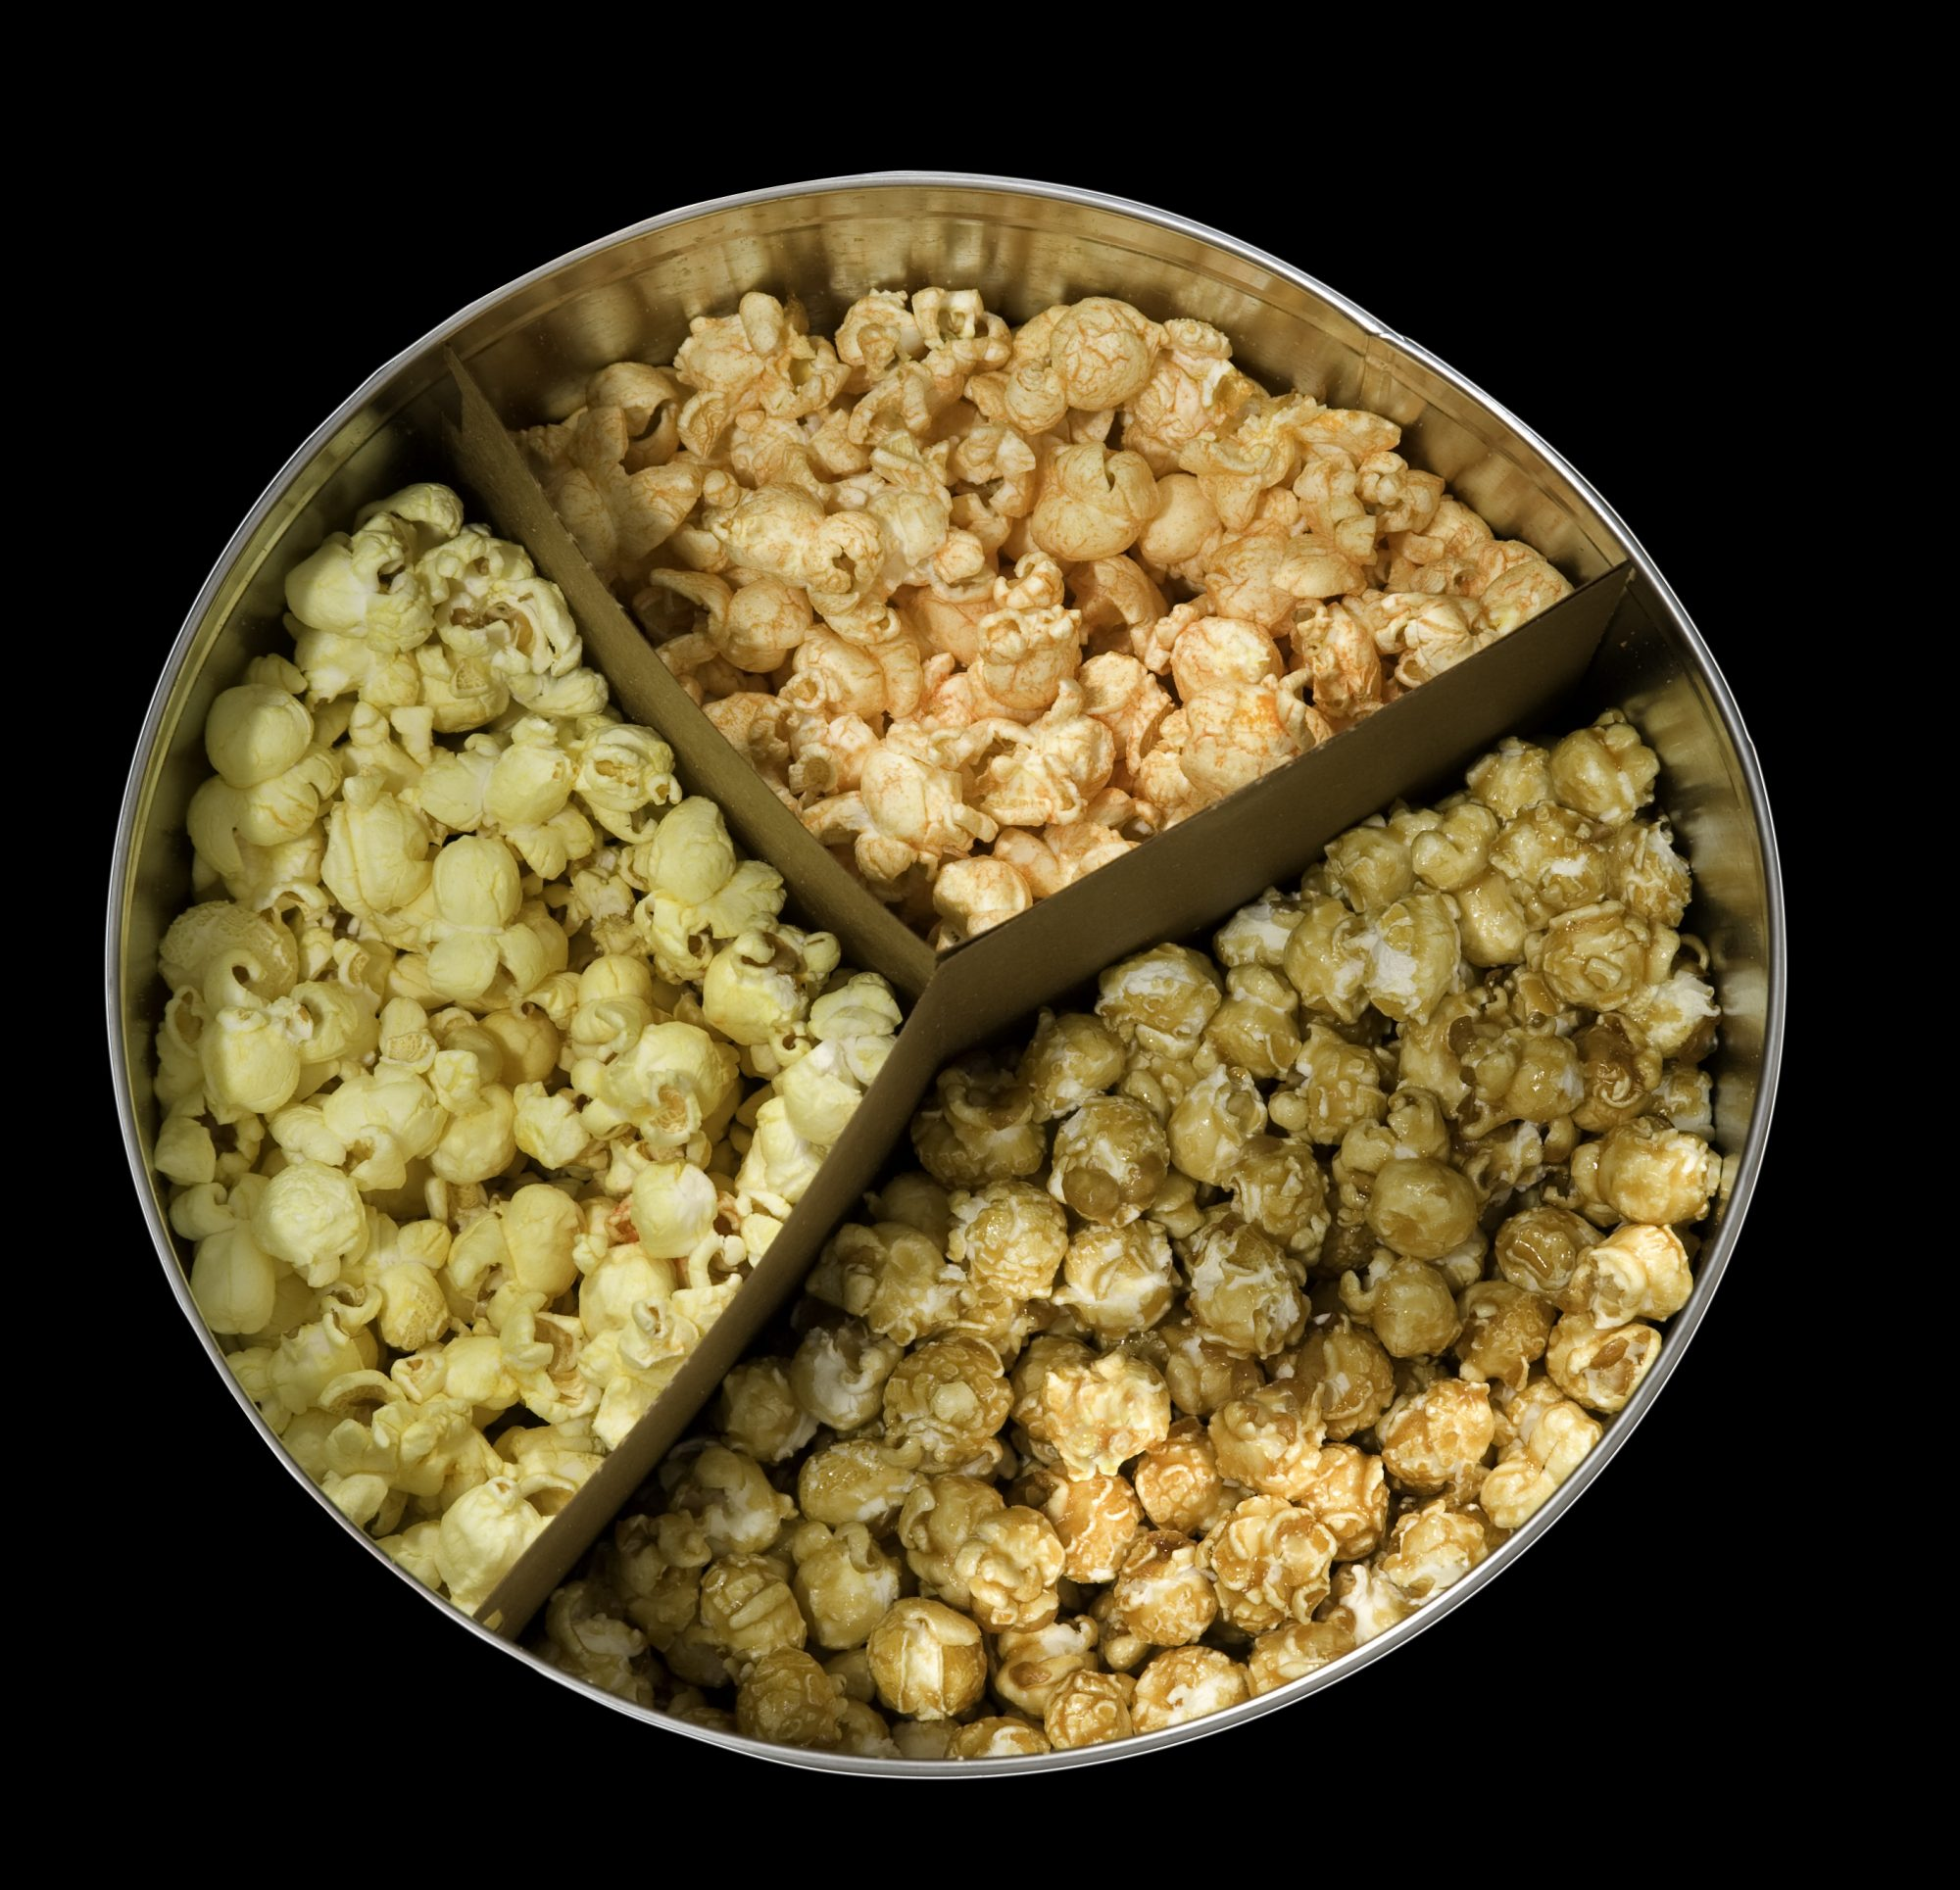 Popcorn tin from top